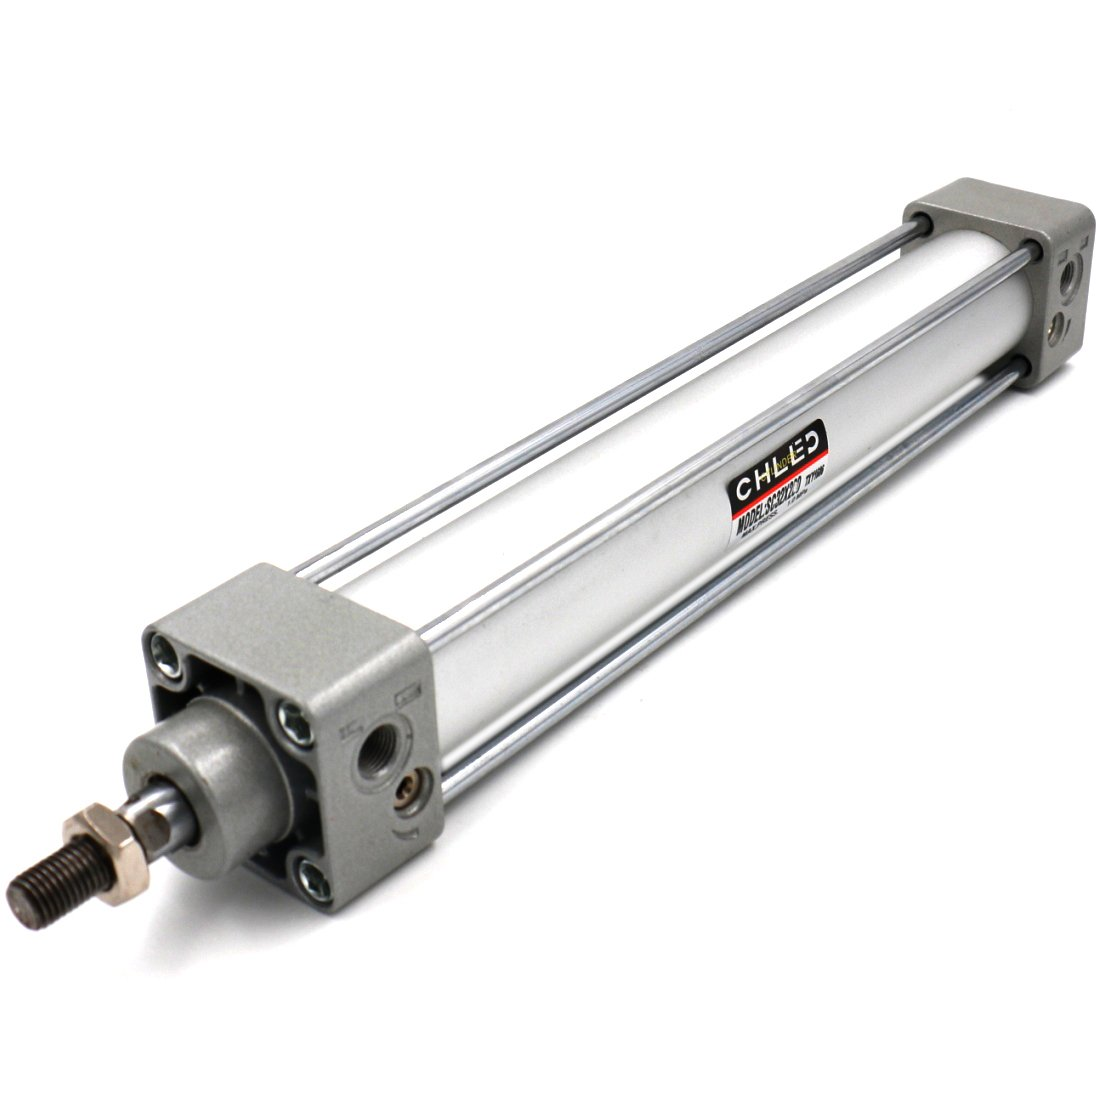 Baomain Pneumatic Air Cylinder SC 32 x 250 PT 1/8, Bore: 1 1/4 inch, Stroke: 10 inch, Screwed Piston Rod Dual Action 1 Mpa